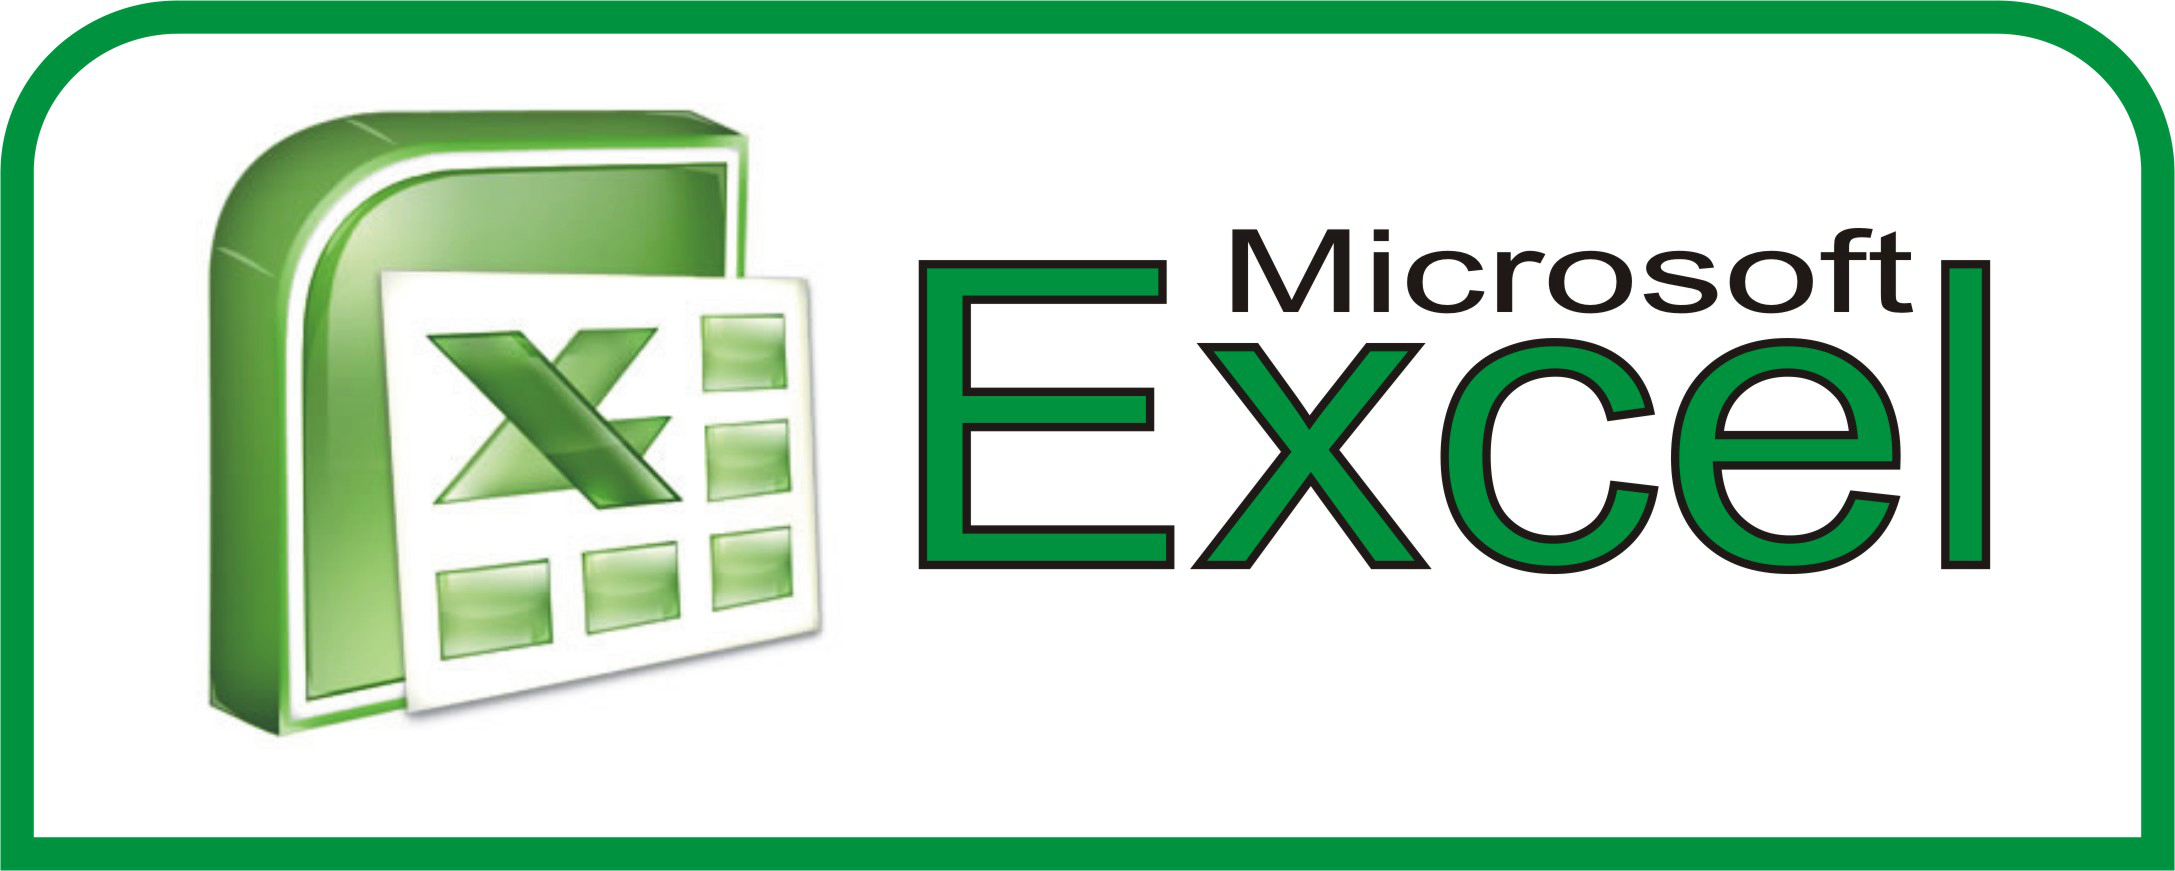 Ediblewildsus  Scenic  Excel Shortcuts You Probably Didnt Know About  Techdissected With Remarkable Excel Confidence Interval Besides Hyperlink Not Working In Excel Furthermore How To Highlight Cells In Excel With Astonishing Add Columns In Excel Also Excel Weekday Function In Addition Trendline Excel And Excel Stop Auto Date As Well As Insert Drop Down In Excel Additionally Excel Pivot Table Calculated Field From Techdissectedcom With Ediblewildsus  Remarkable  Excel Shortcuts You Probably Didnt Know About  Techdissected With Astonishing Excel Confidence Interval Besides Hyperlink Not Working In Excel Furthermore How To Highlight Cells In Excel And Scenic Add Columns In Excel Also Excel Weekday Function In Addition Trendline Excel From Techdissectedcom